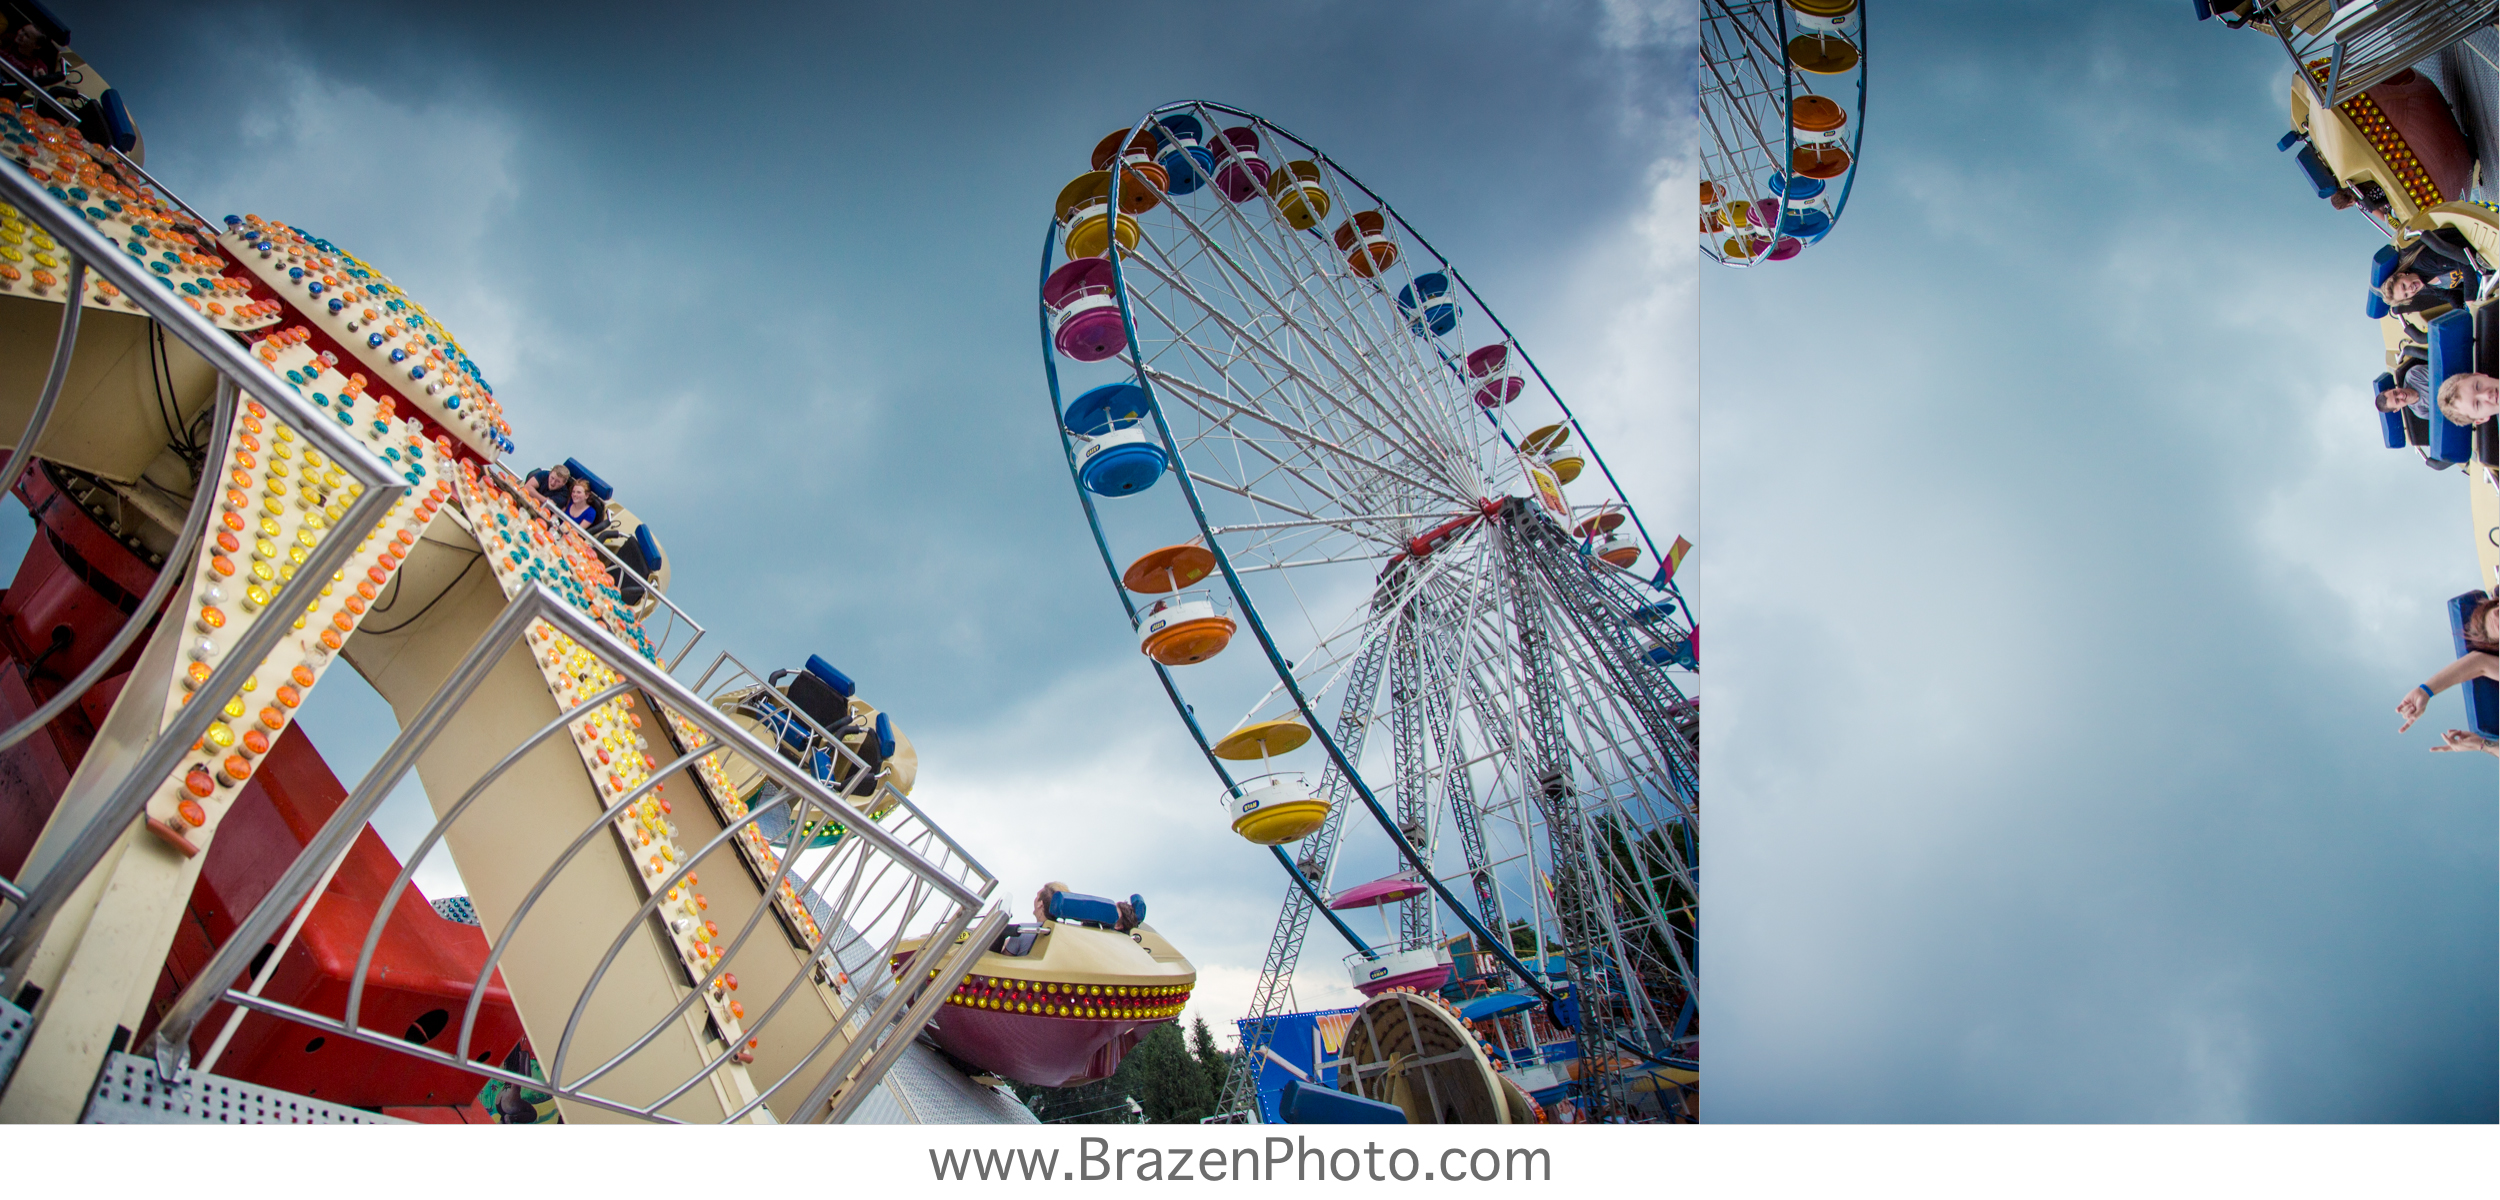 Florida State Fair-Orlando-Brazen Photo-40.jpg